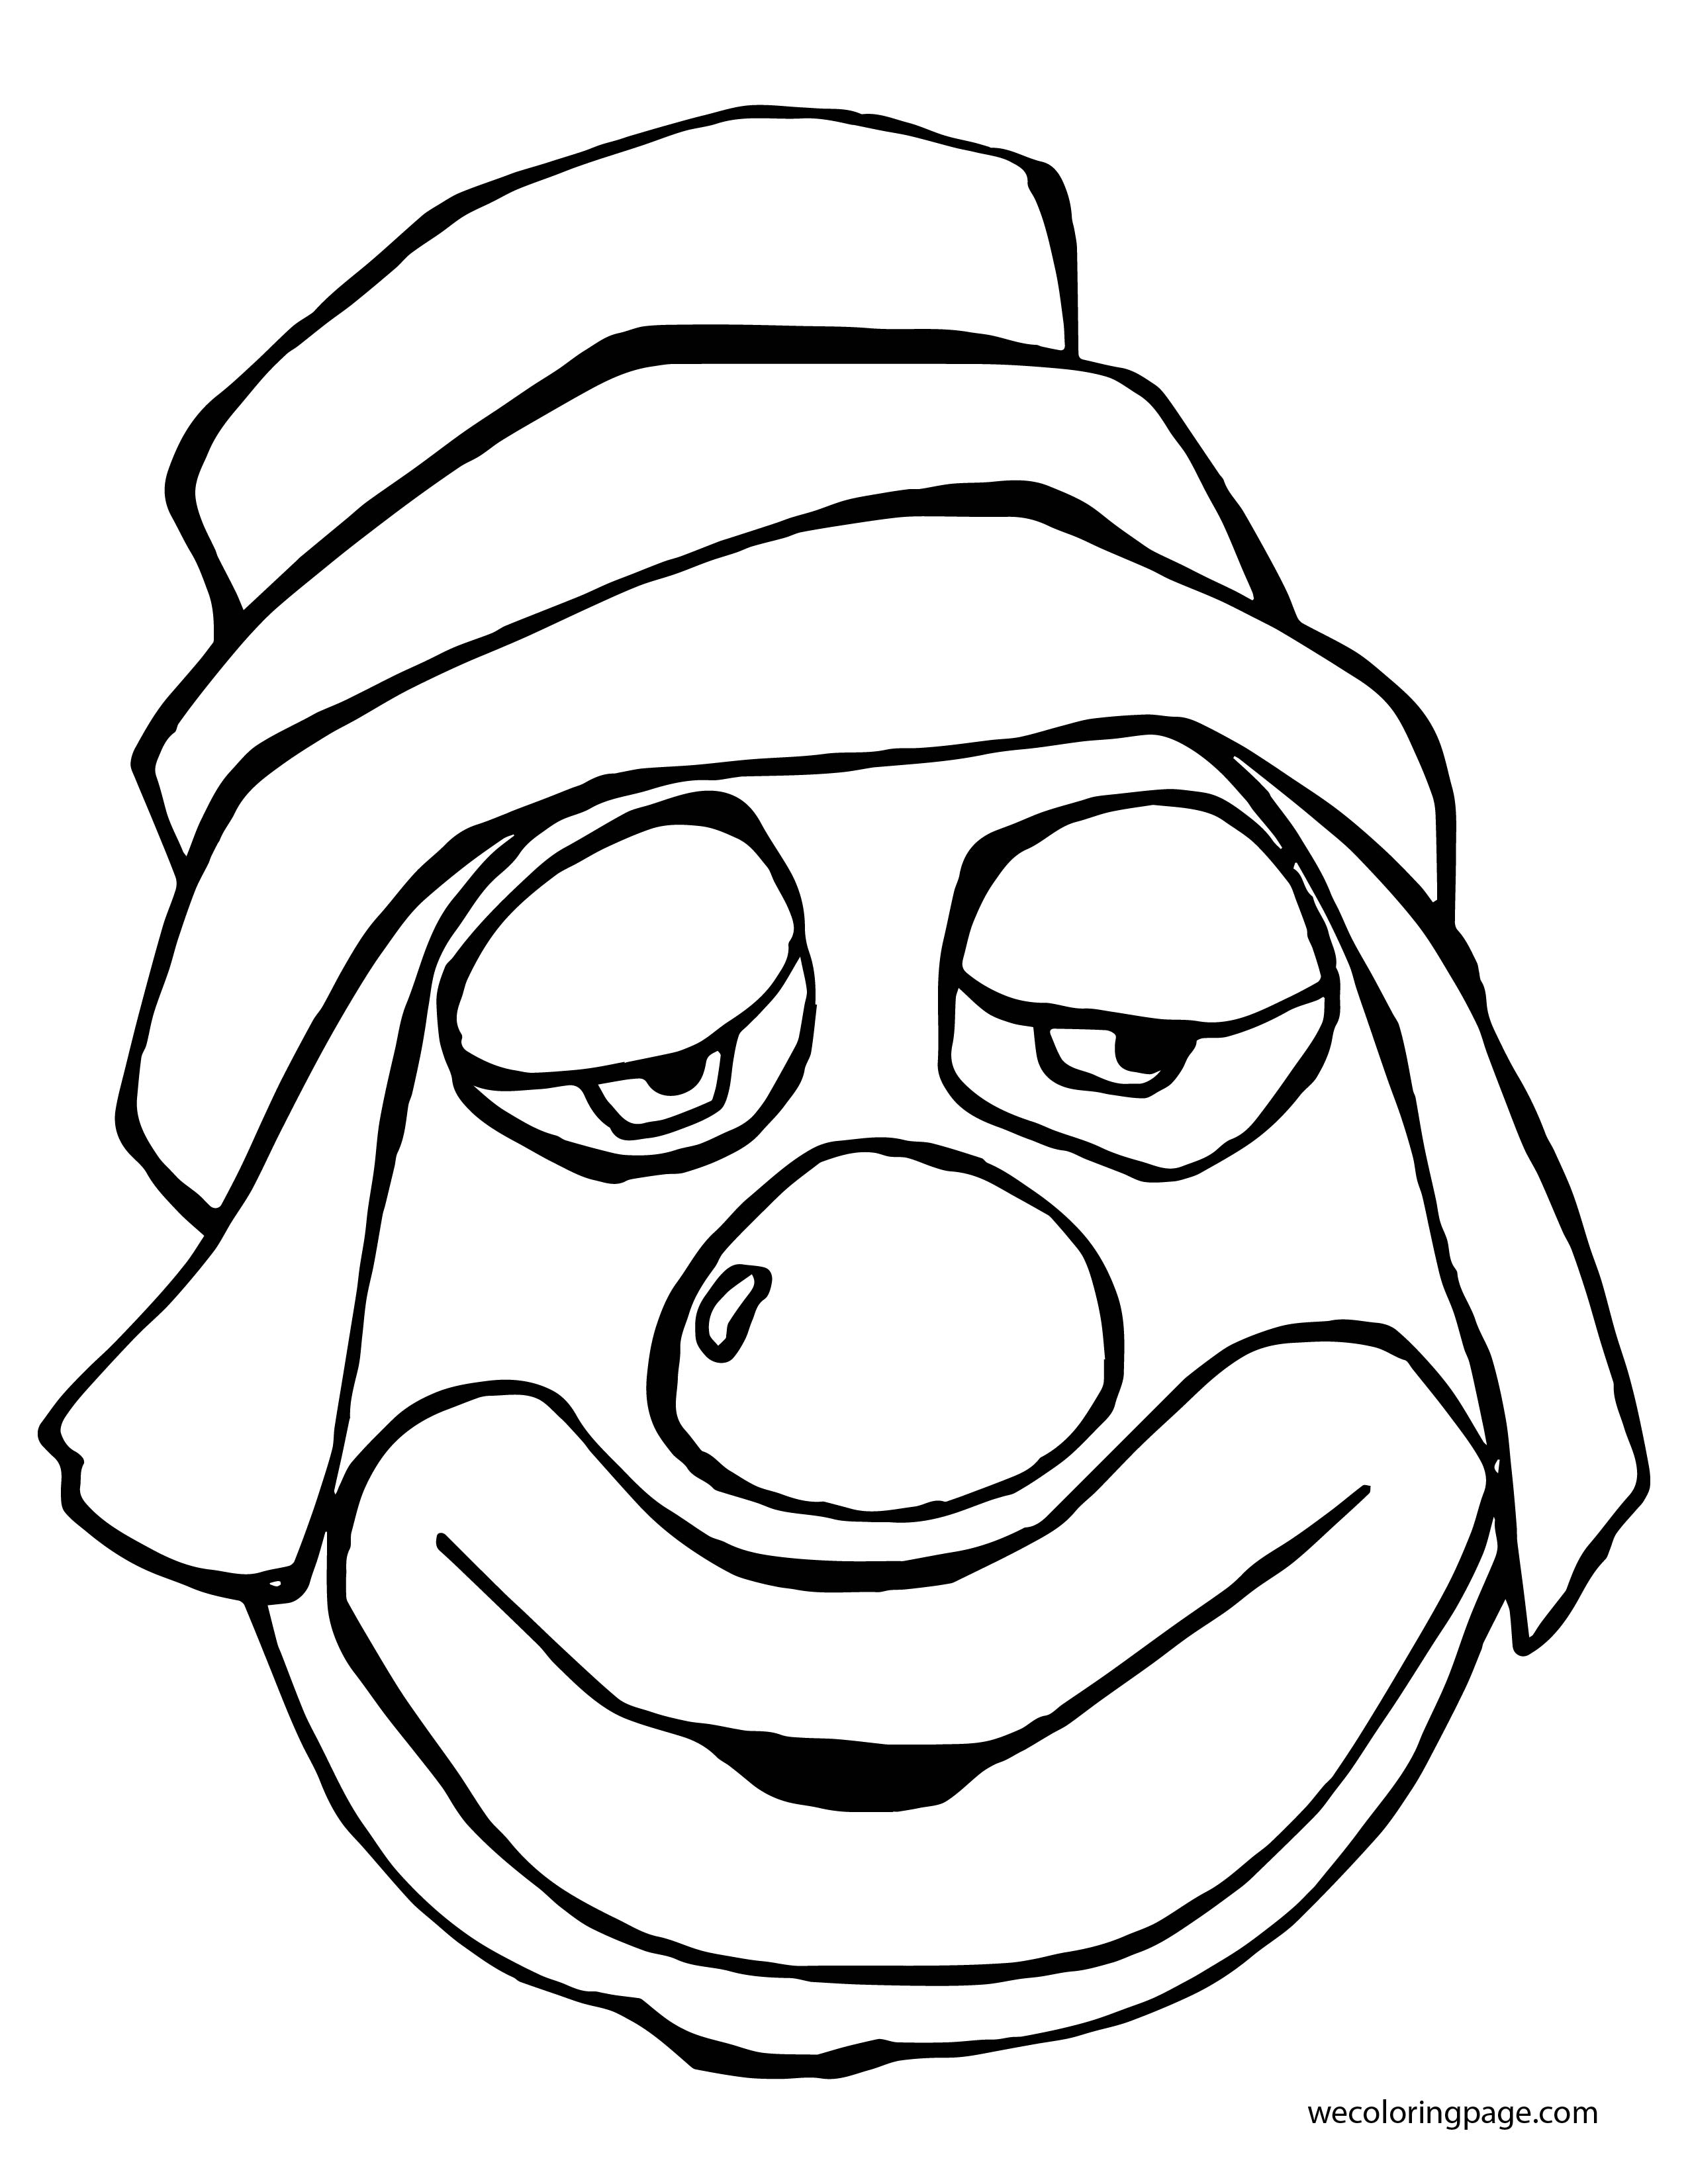 Clown Coloring Page WeColoringPage 069 01